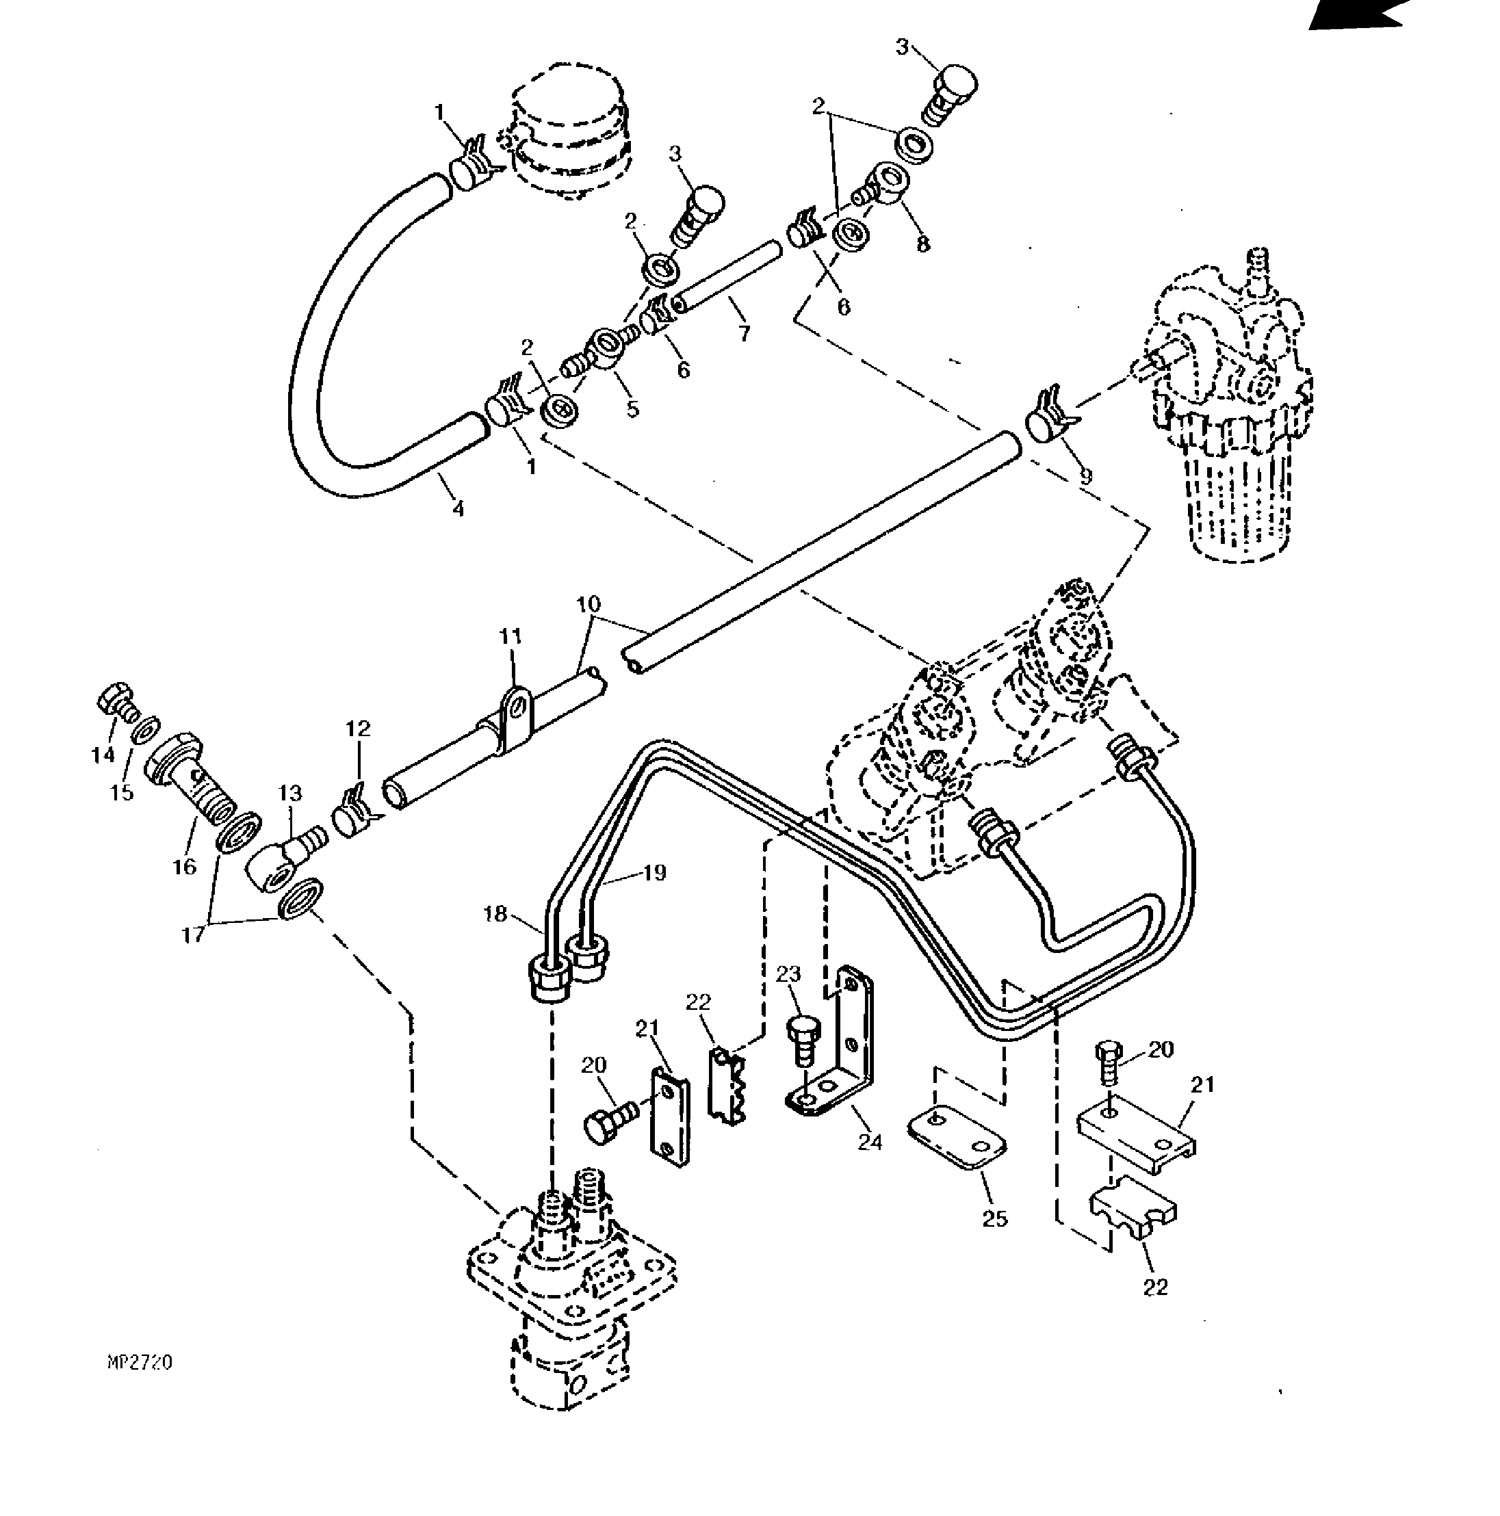 John Deere Skid Steer Parts Diagram